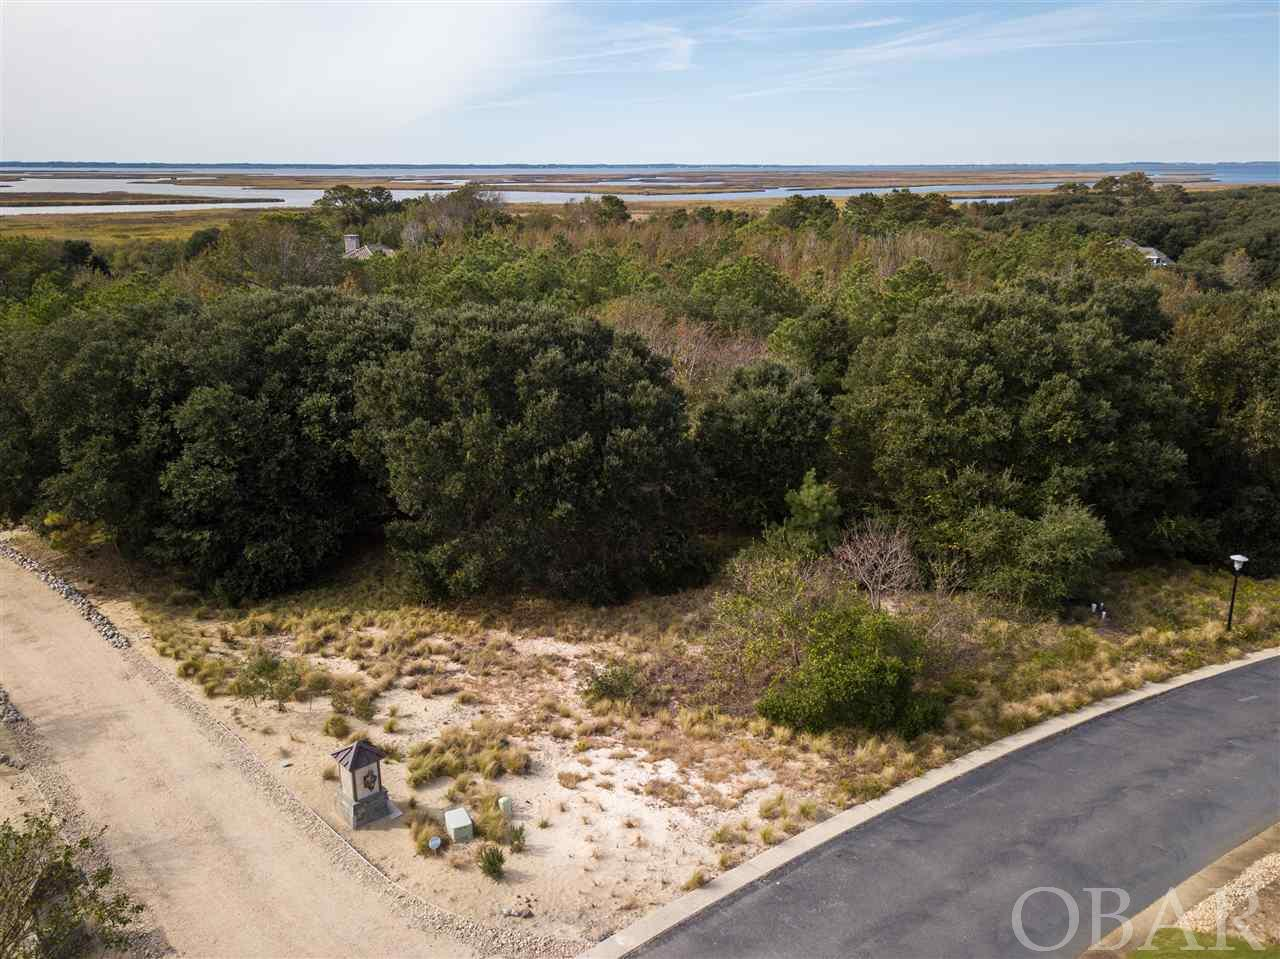 682 Wild Cherry Court, Corolla, NC 27927, ,Lots/land,For sale,Wild Cherry Court,102458